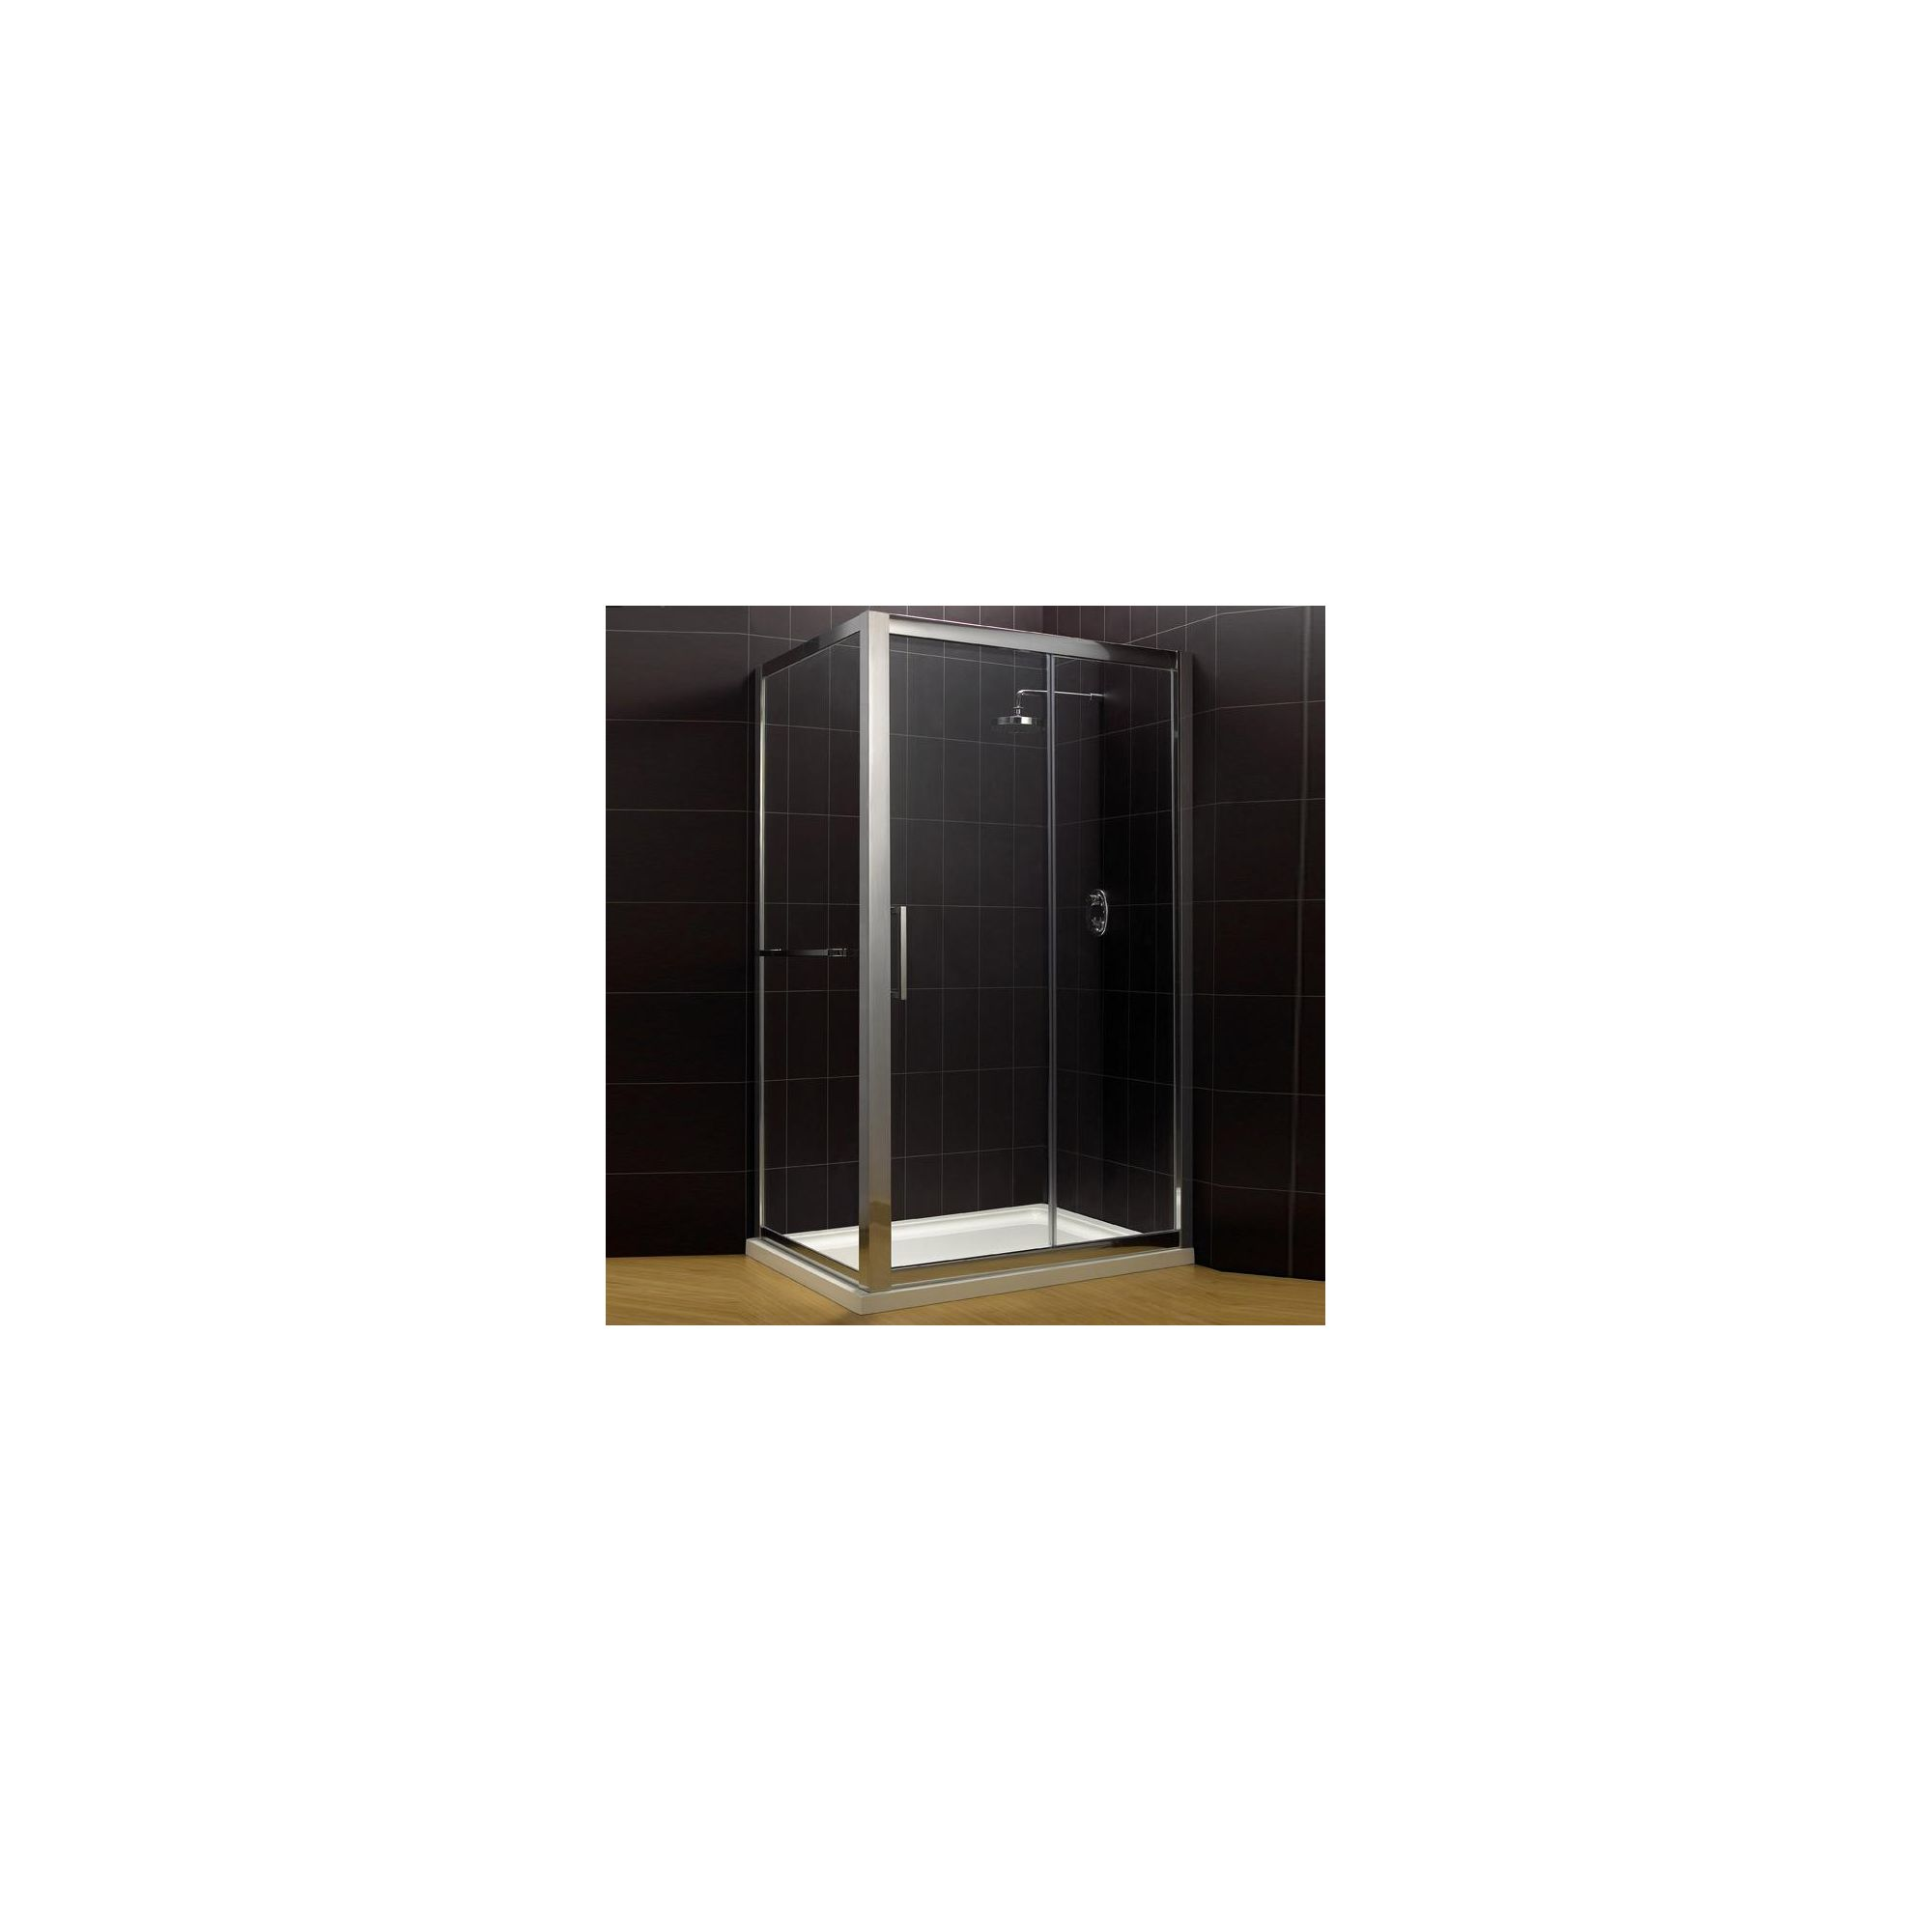 Duchy Supreme Silver Sliding Door Shower Enclosure with Towel Rail, 1000mm x 760mm, Standard Tray, 8mm Glass at Tesco Direct